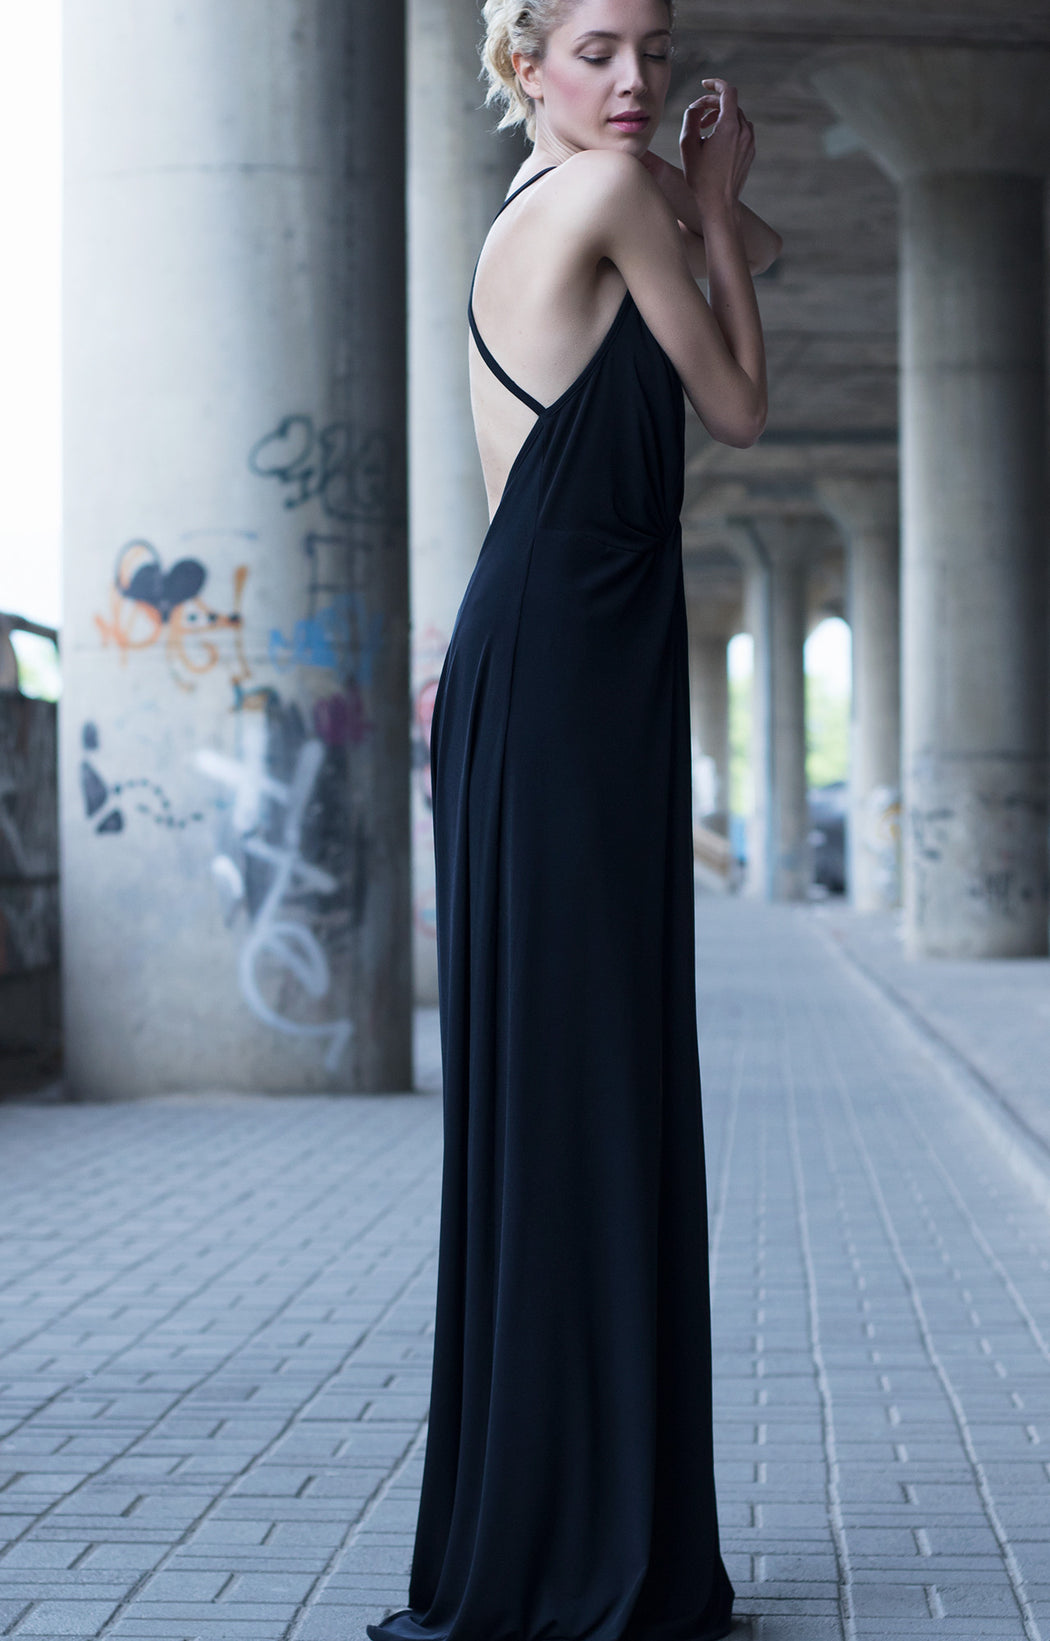 Bastet Noir Black plunging neckline bareback dress with front slit